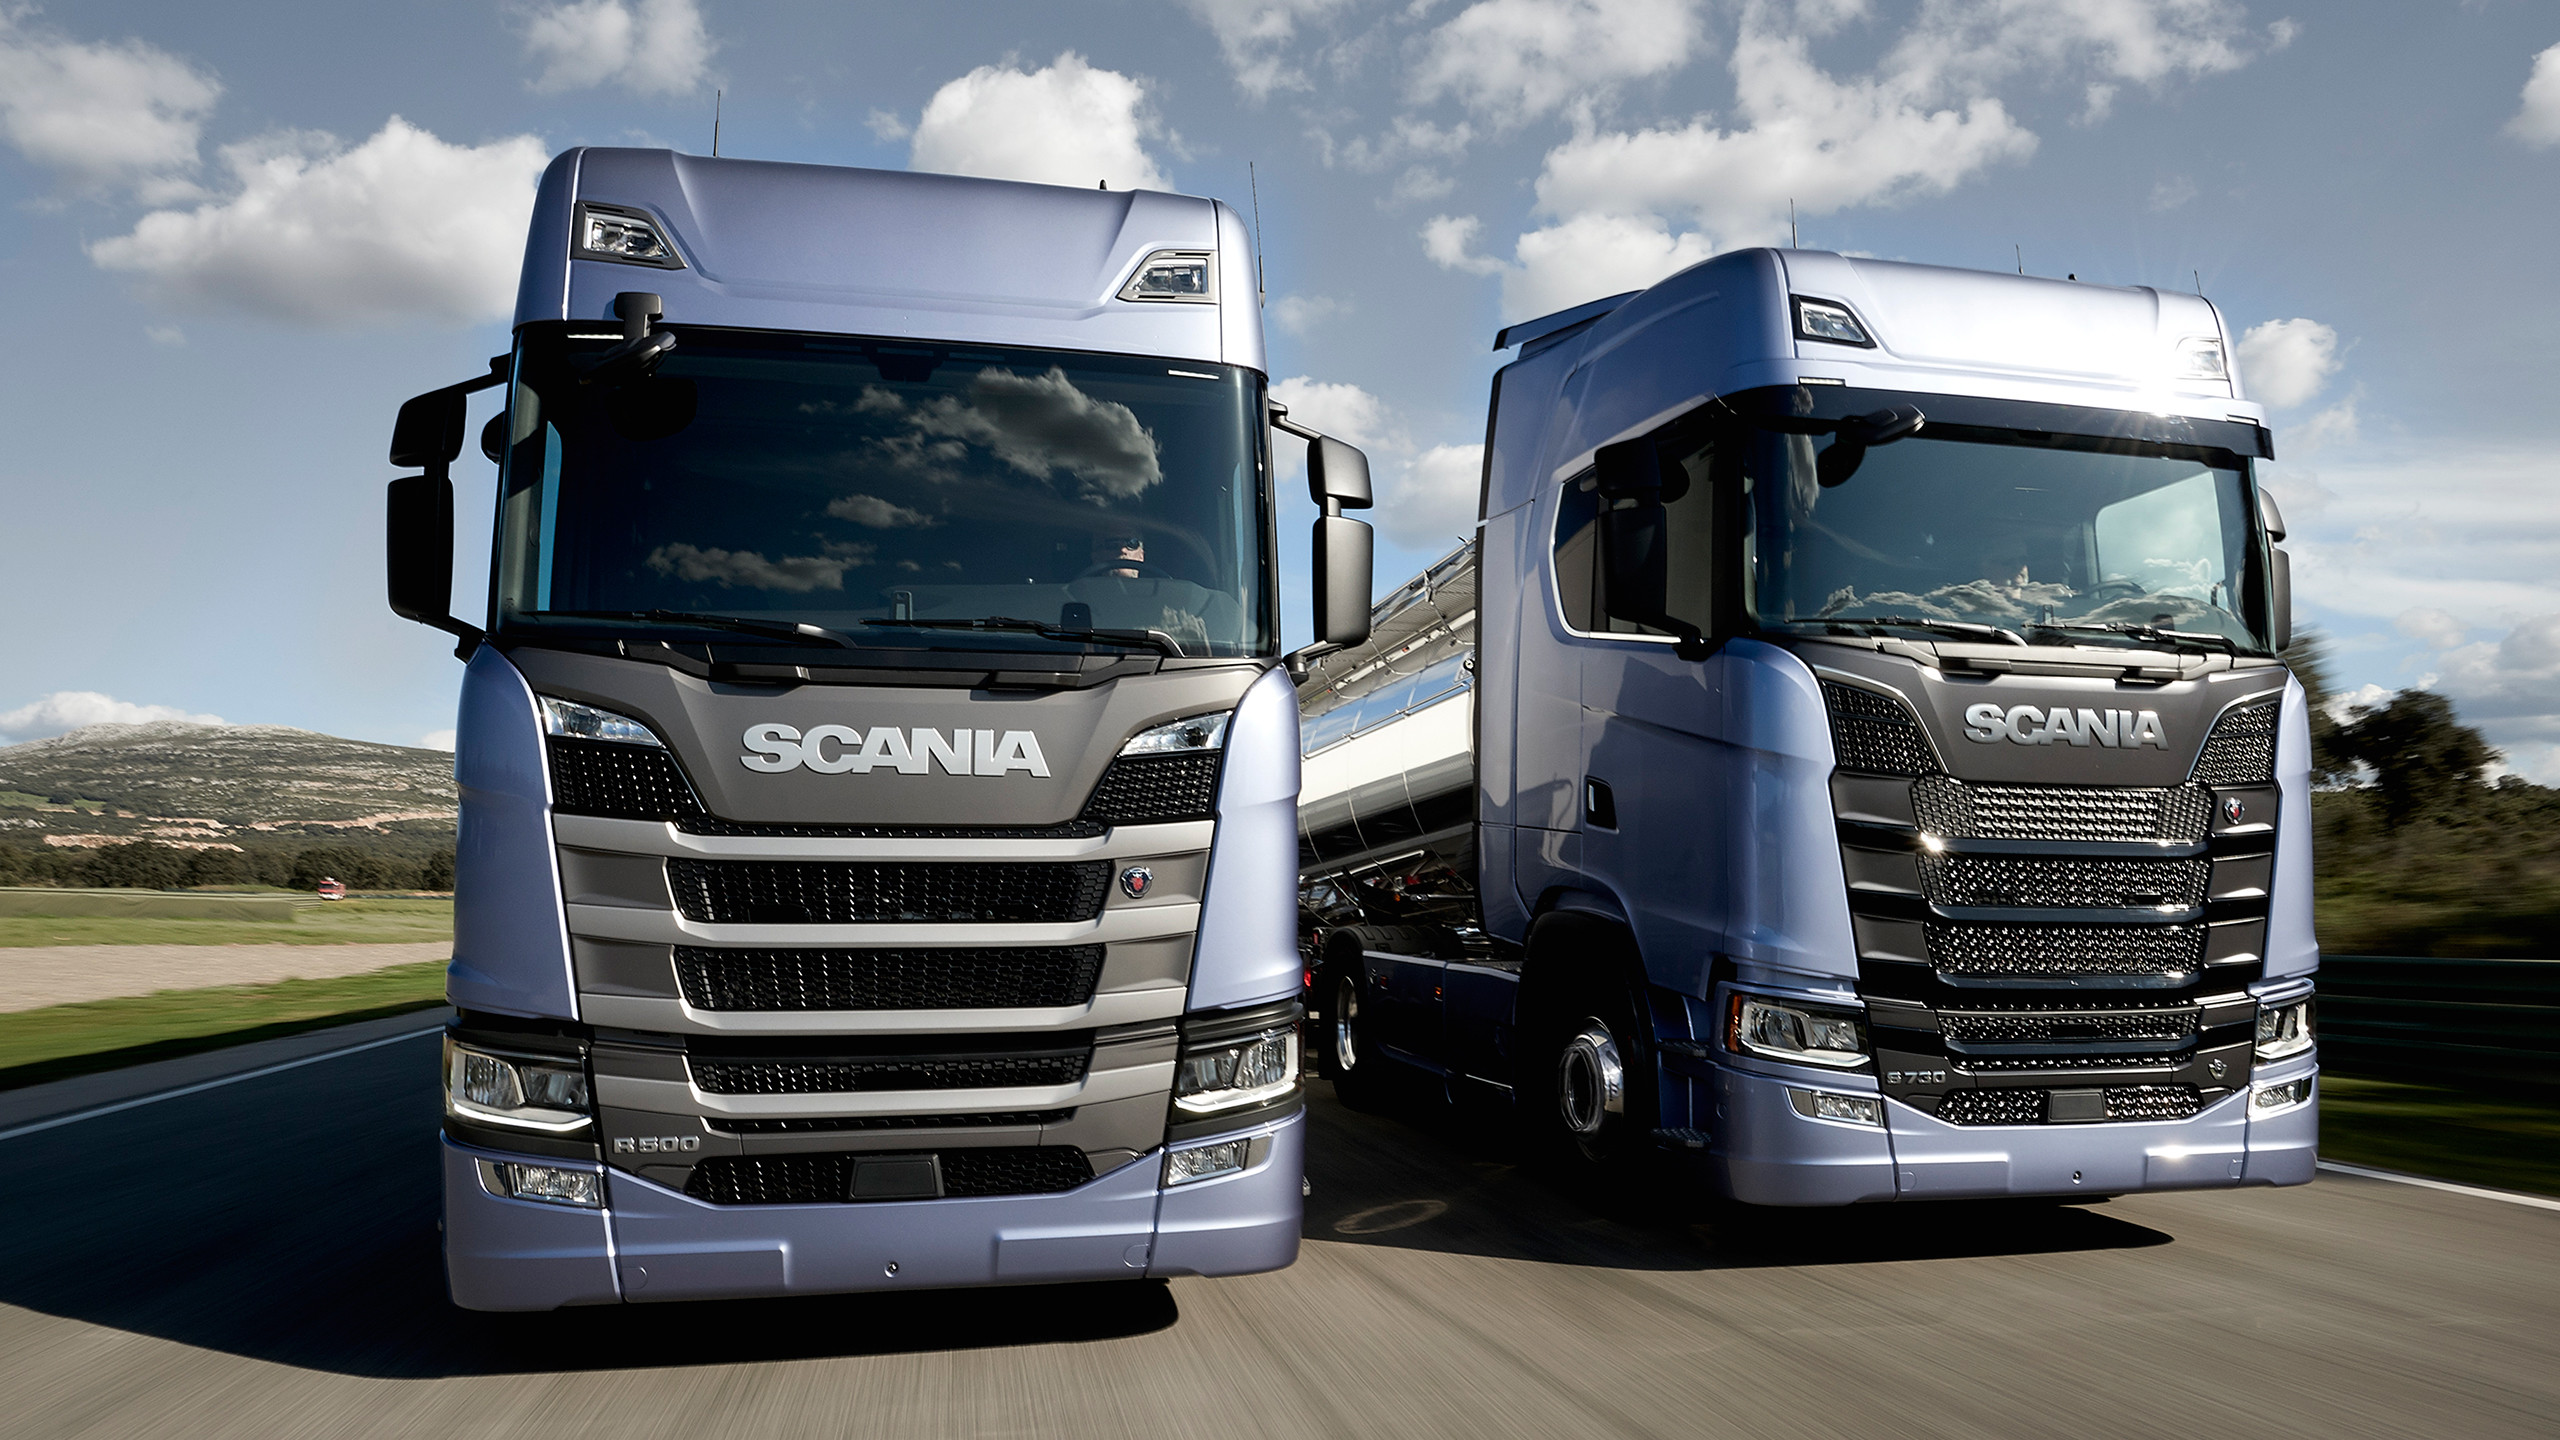 Scania Trucks Wallpapers (61+ images)